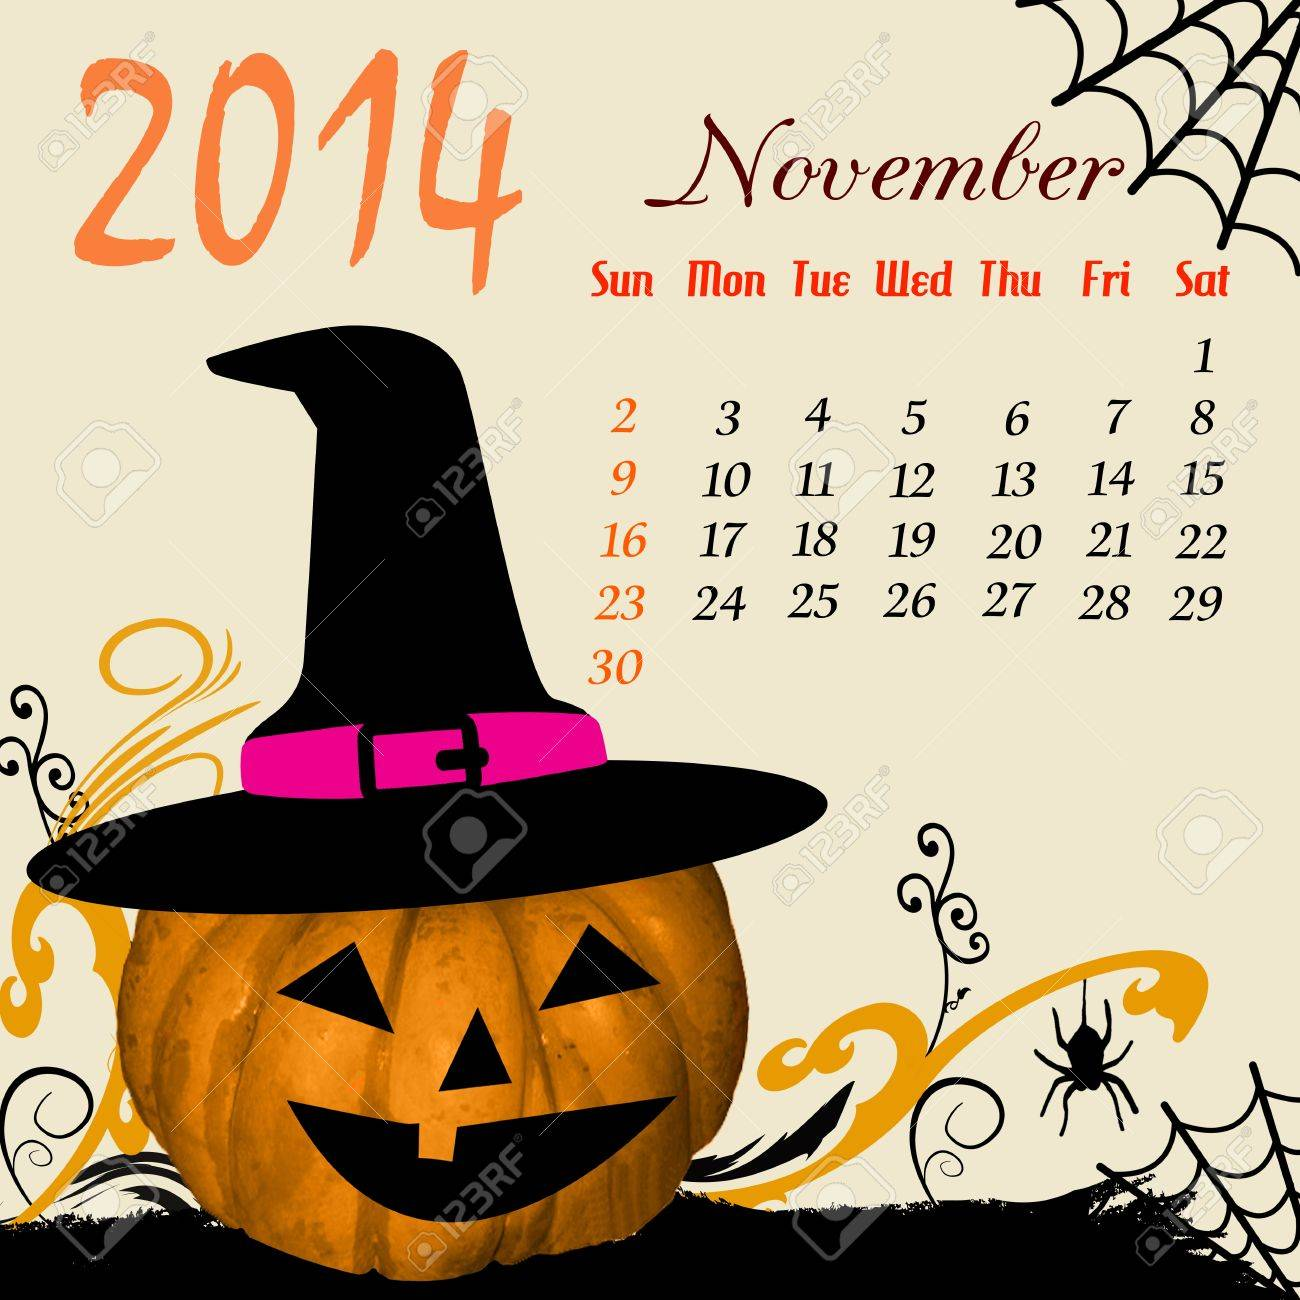 Calendar for 2014 November with Halloween elements Stock Vector - 19160966